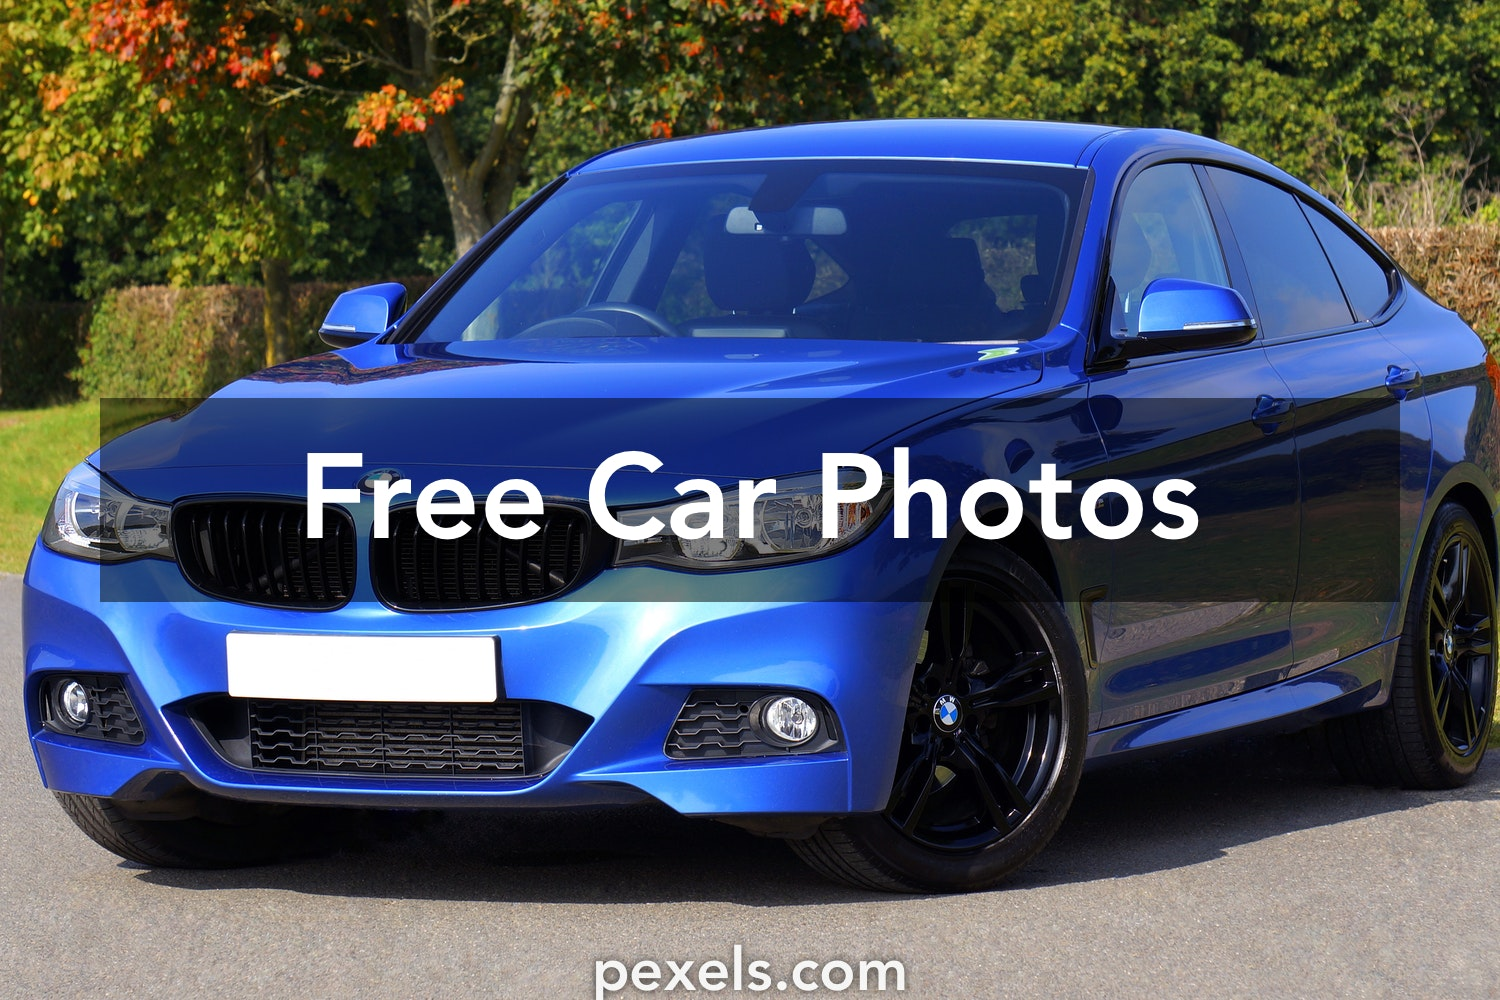 Car Images Pexels Free Stock Photos - Car pictures